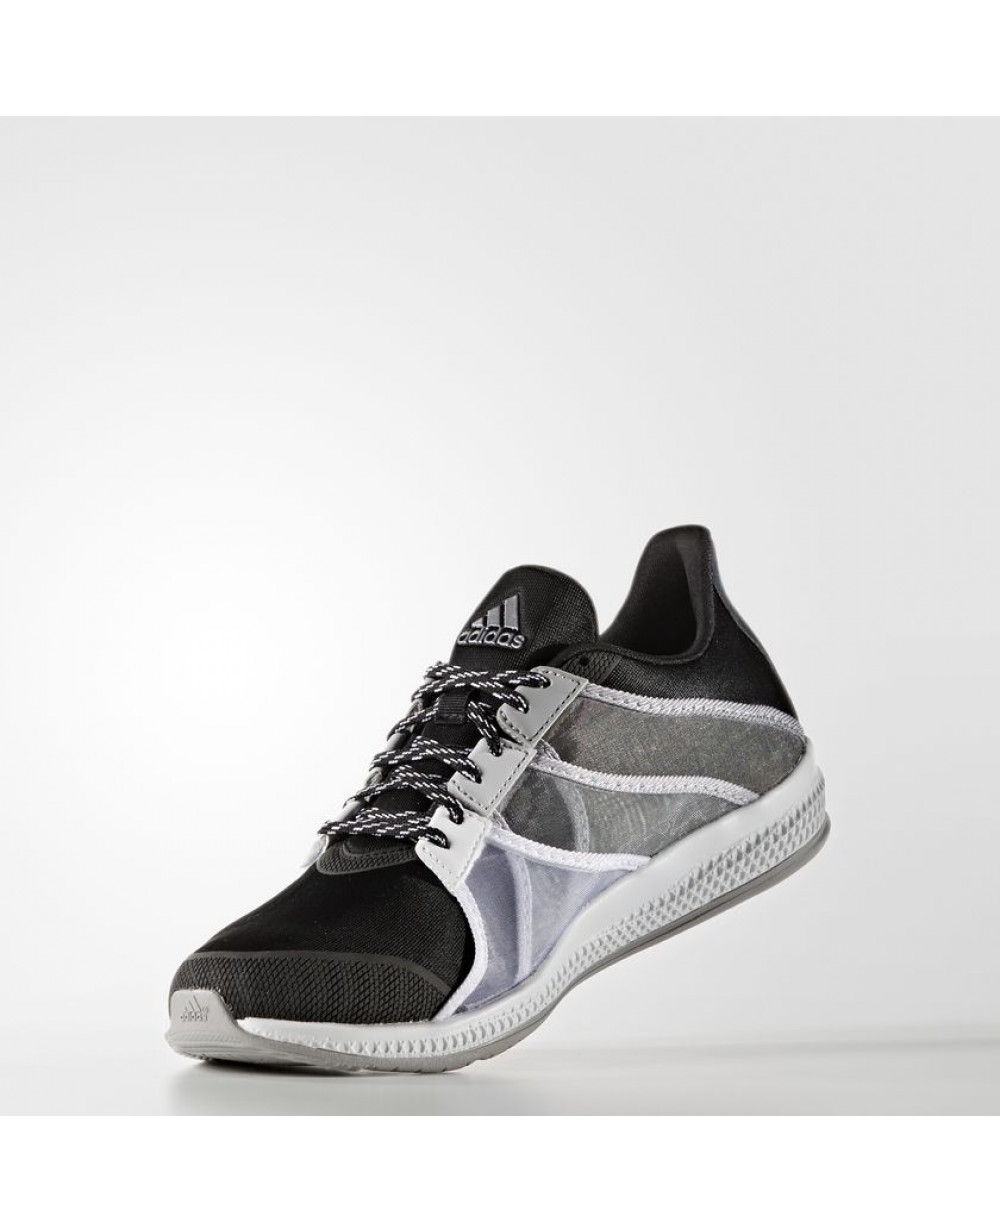 5e467d395 More Views. Adidas Gymbreaker Bounce Training Shoes For Women BB3979